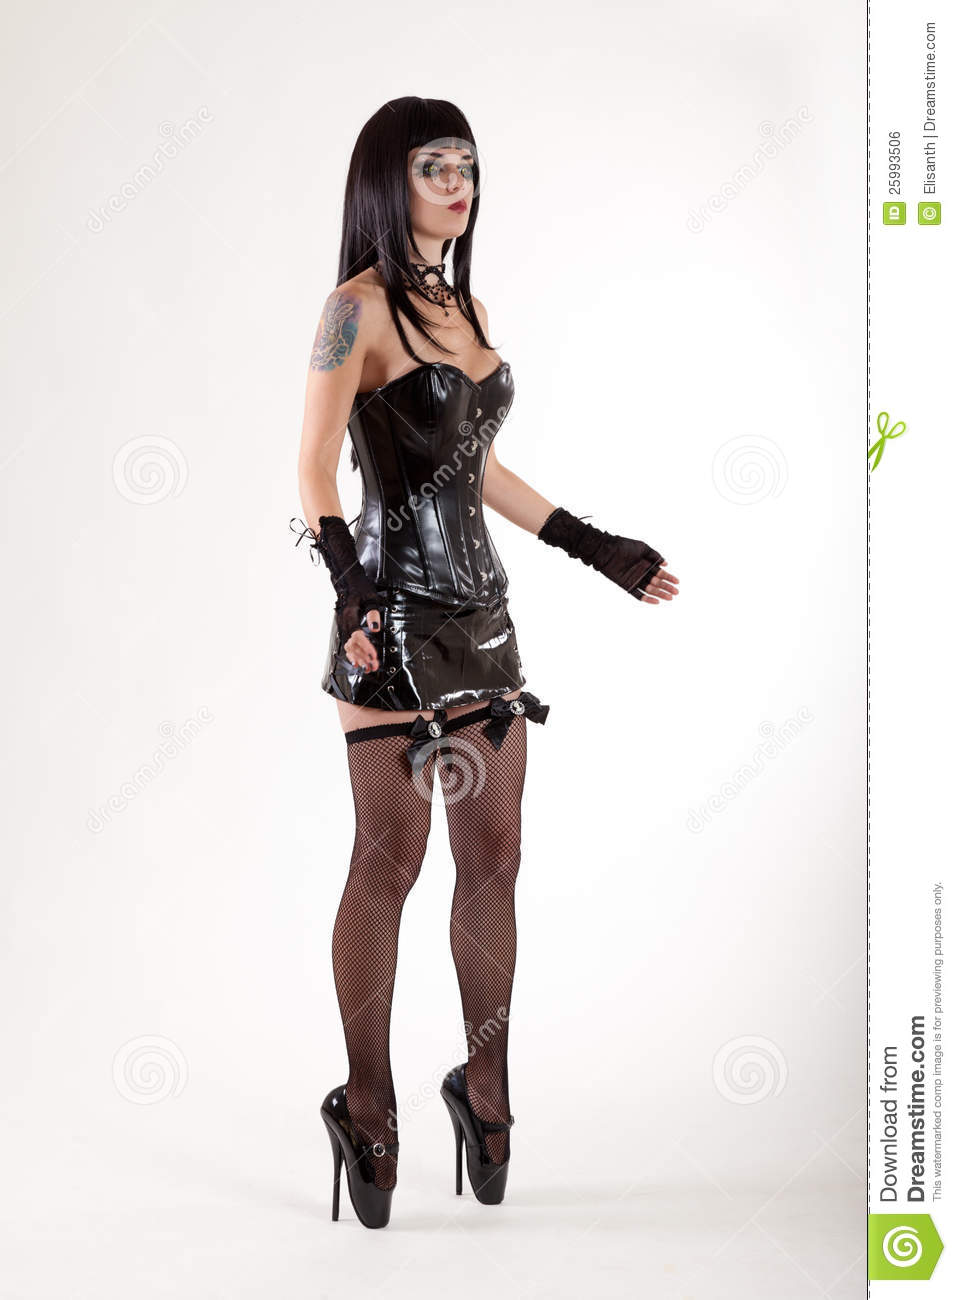 Fetish Woman In Leather Corset Royalty Free Stock Image ...